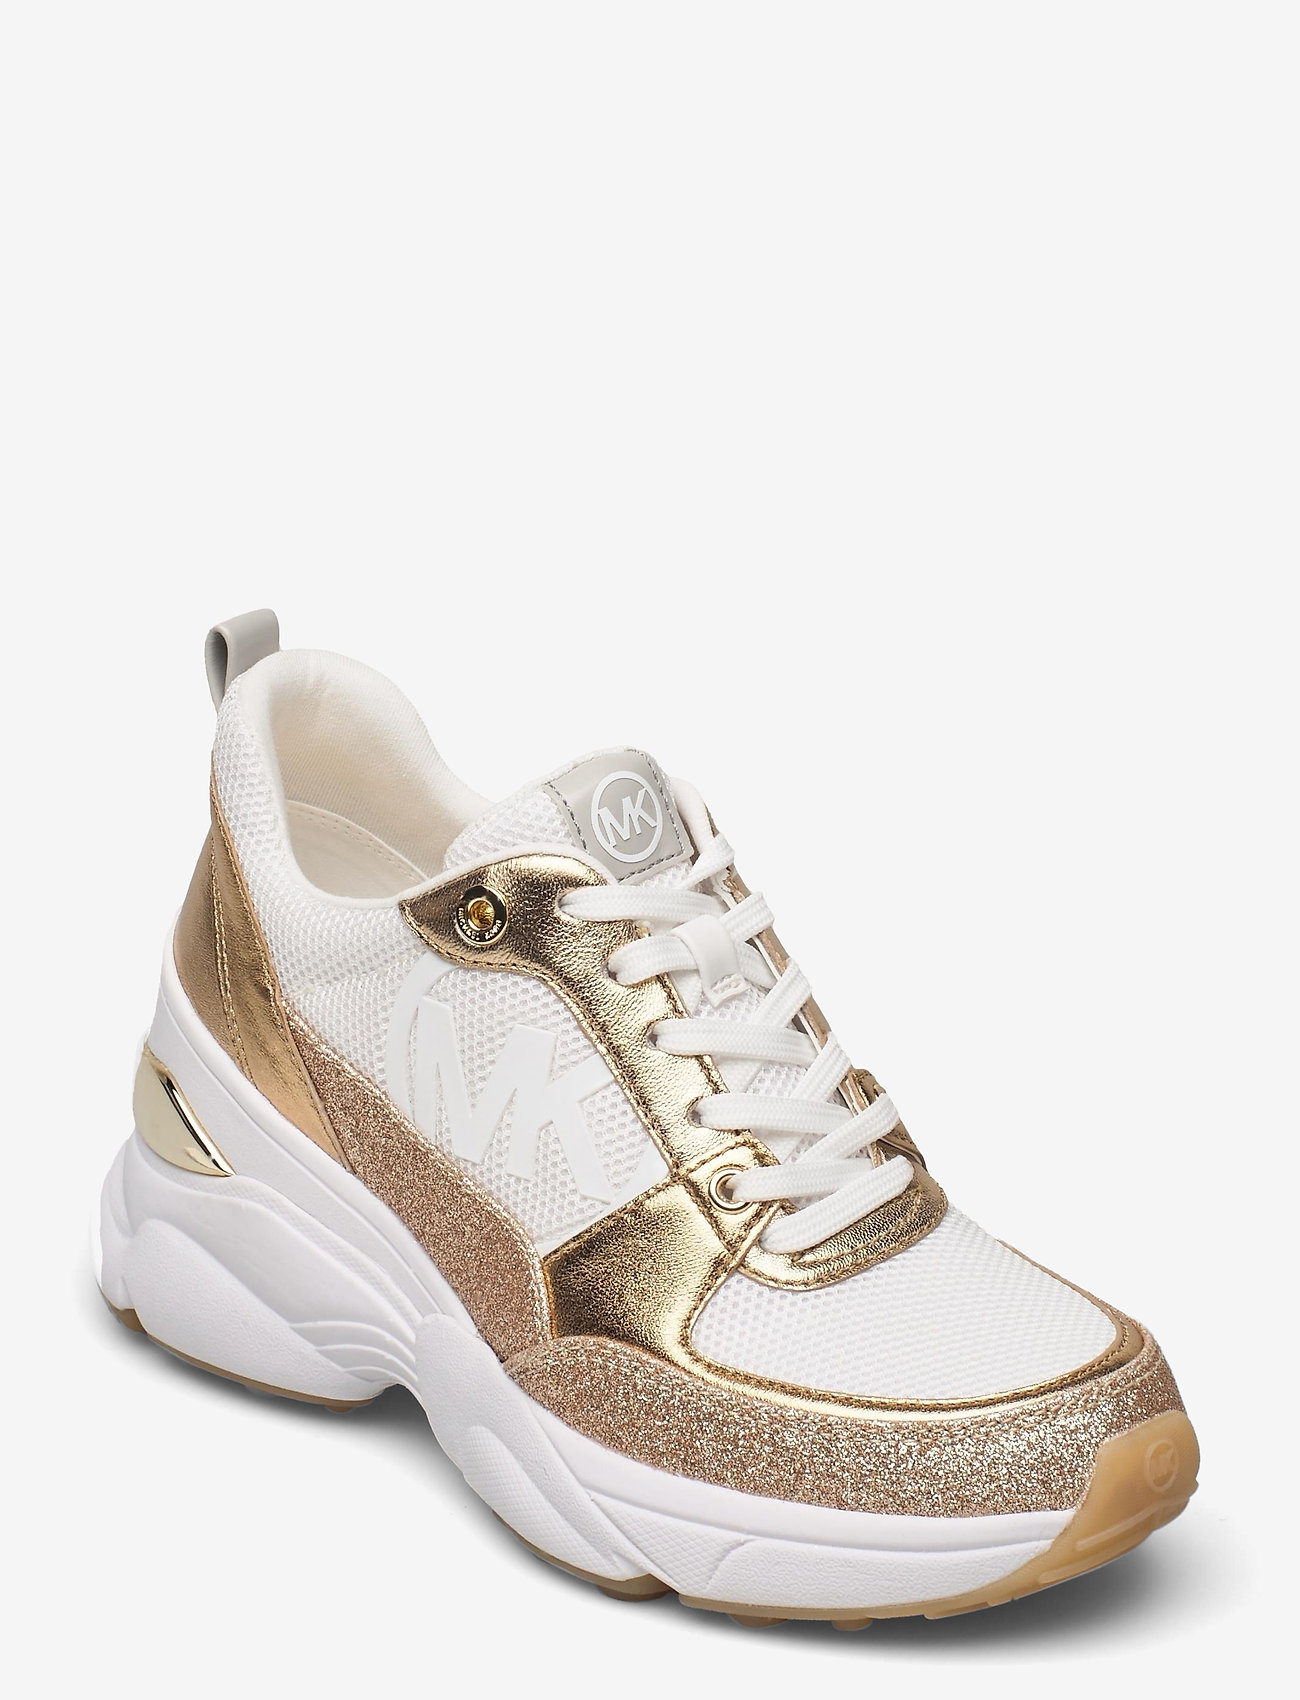 Michael Kors - MICKEY TRAINER - chunky sneakers - opt/gold - 0